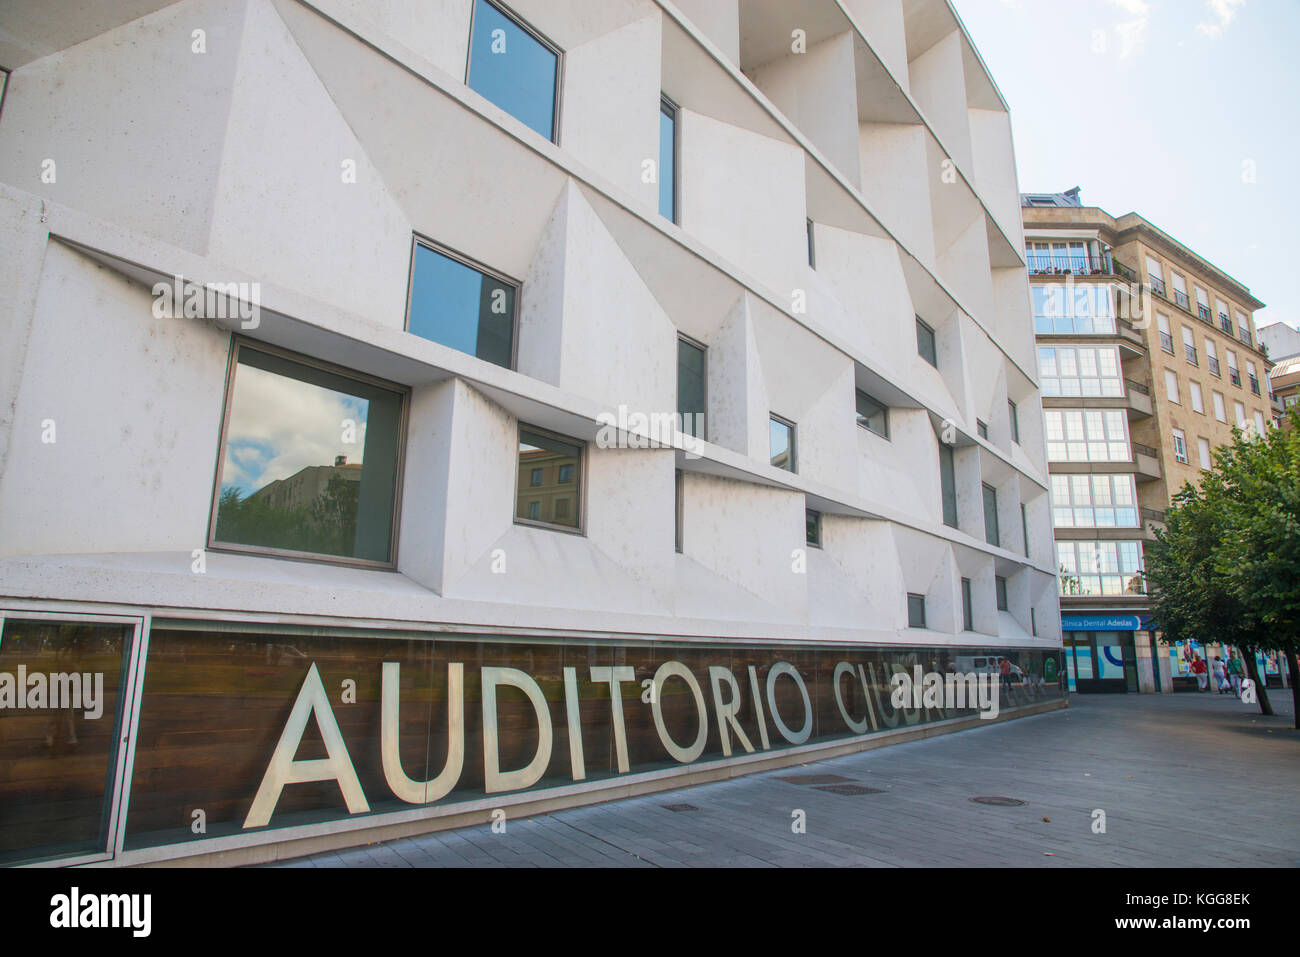 Facade of Ciudad de Leon Auditorium. Leon, Spain. - Stock Image